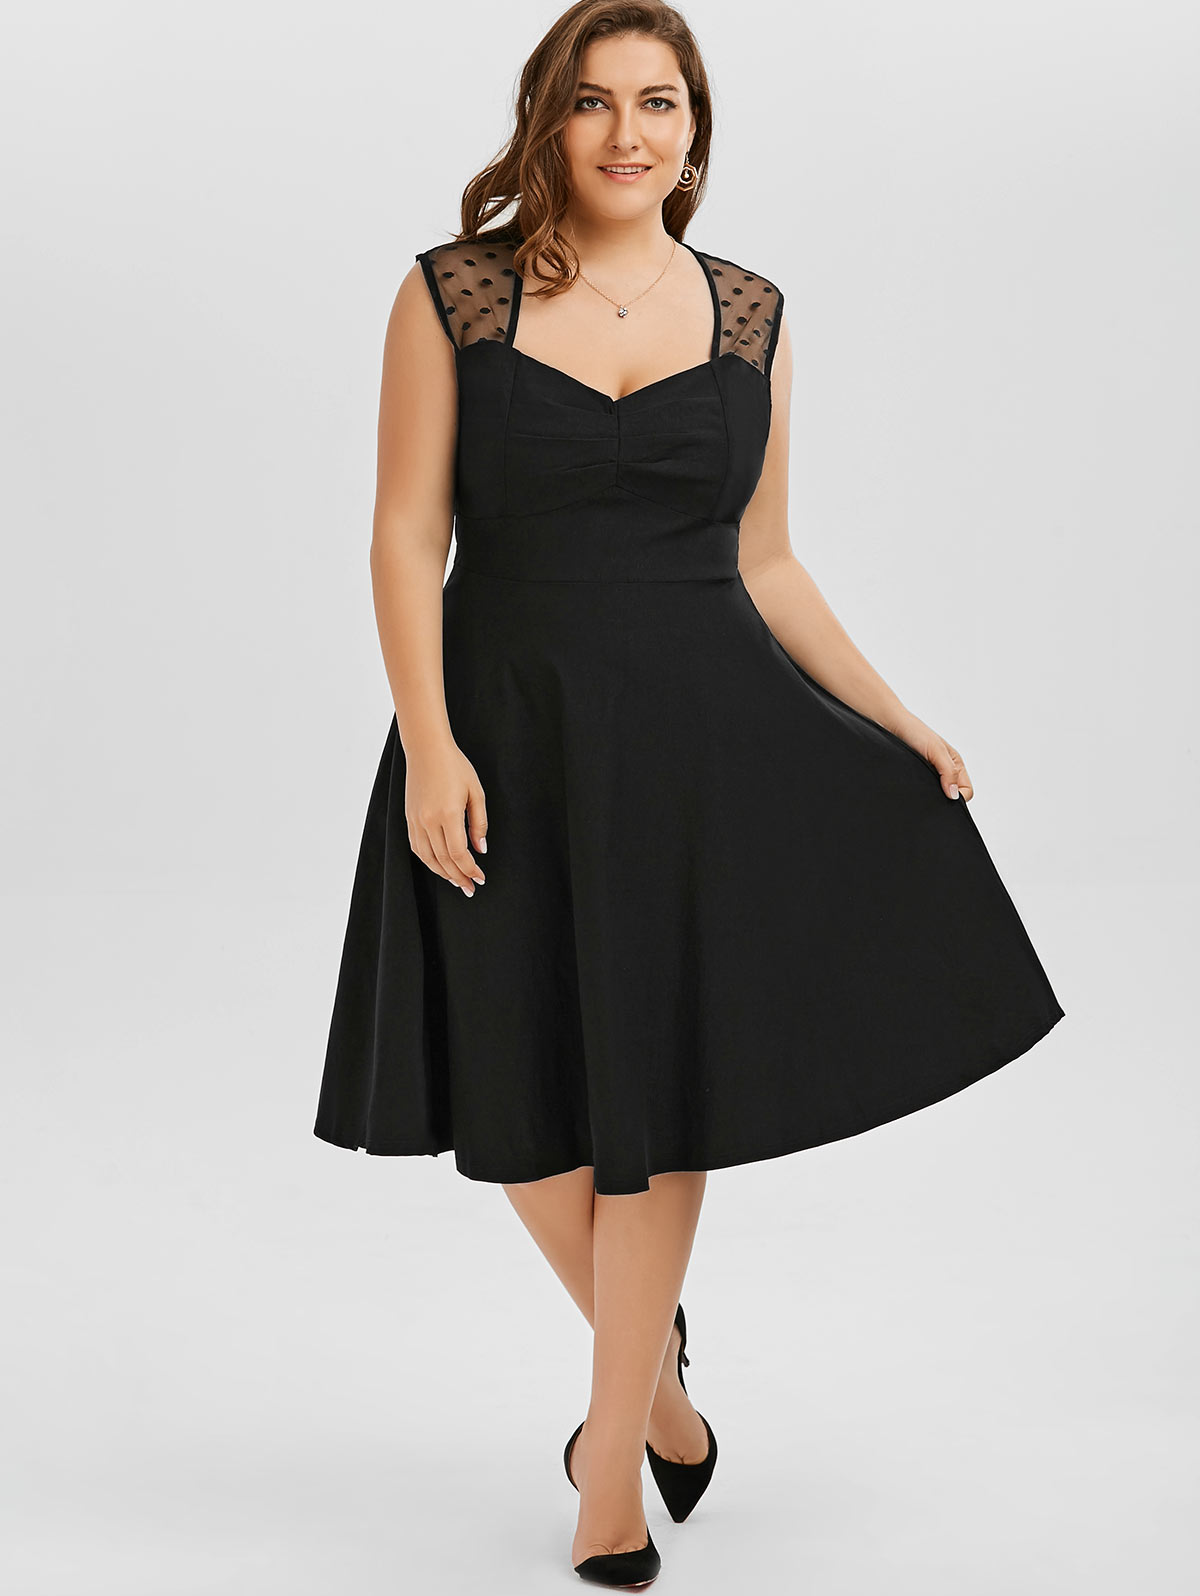 Katie Plus Size Black Retro Dress | Vintage Clothing Online - 1950s Glam